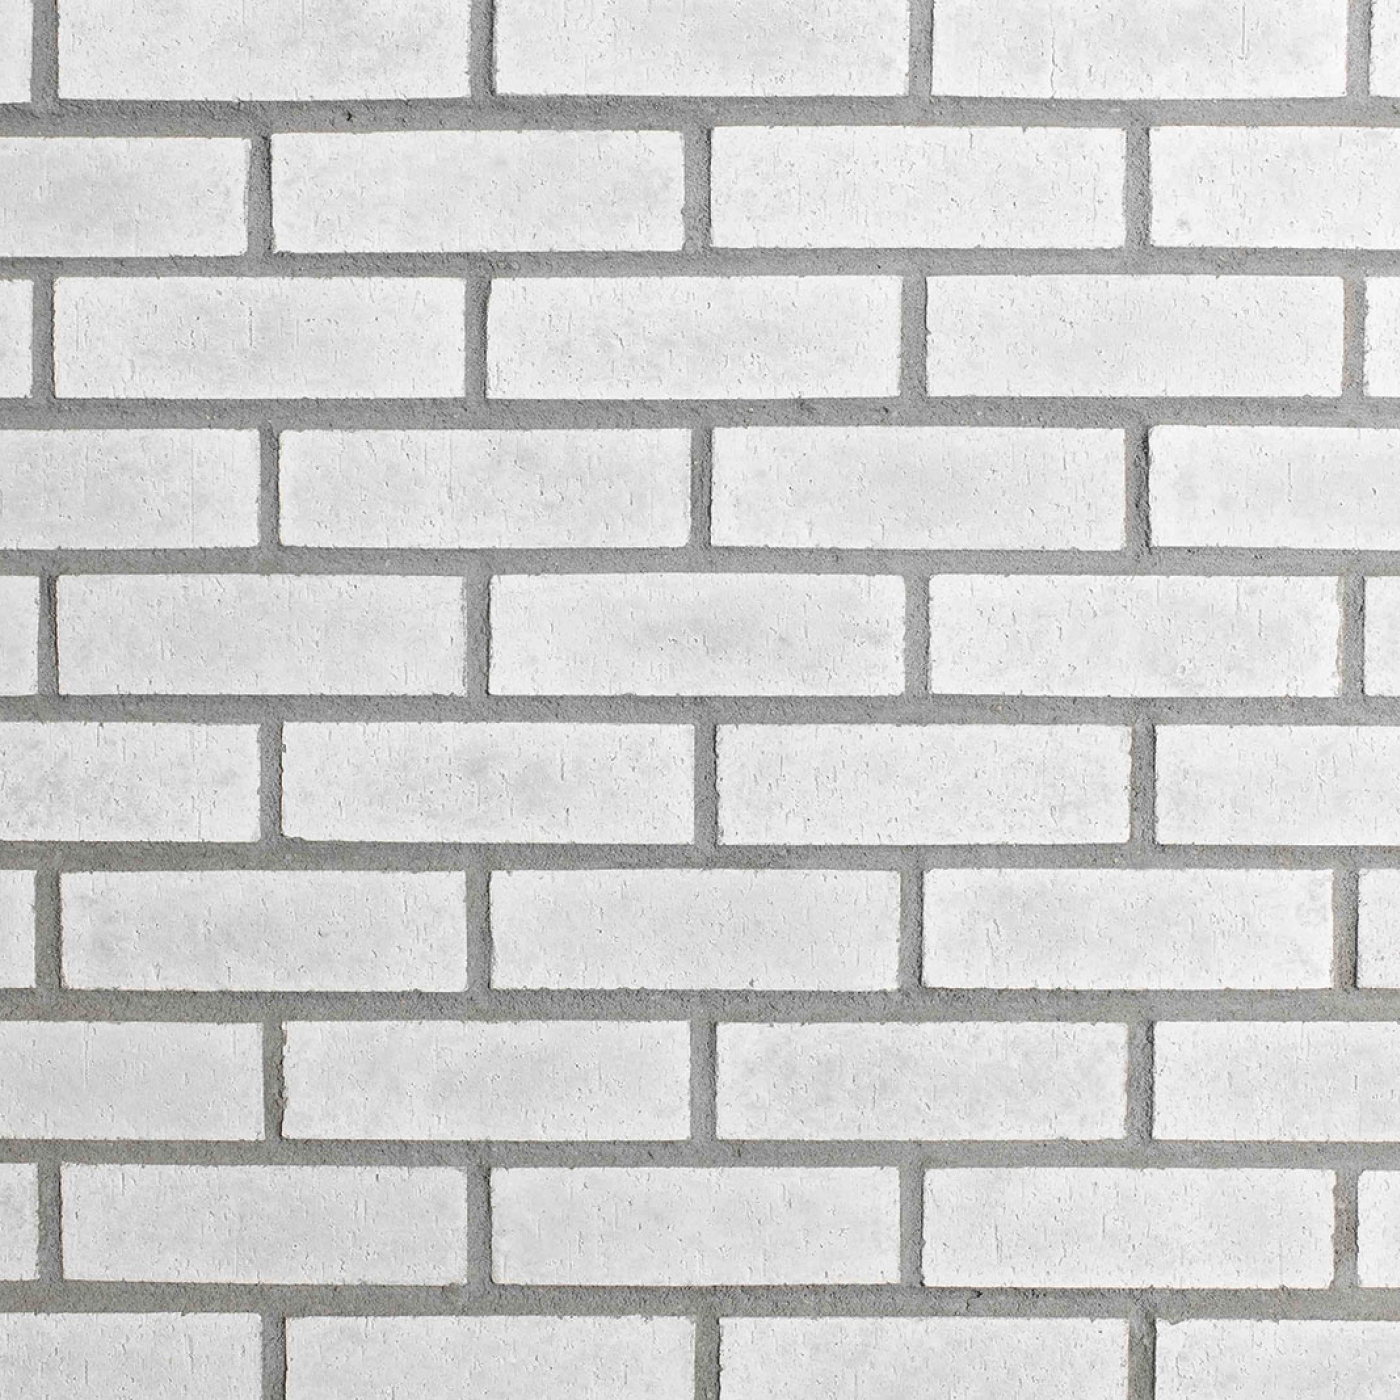 Osceola Clean Brick MW Stone Veneer from Environmental StoneWorks